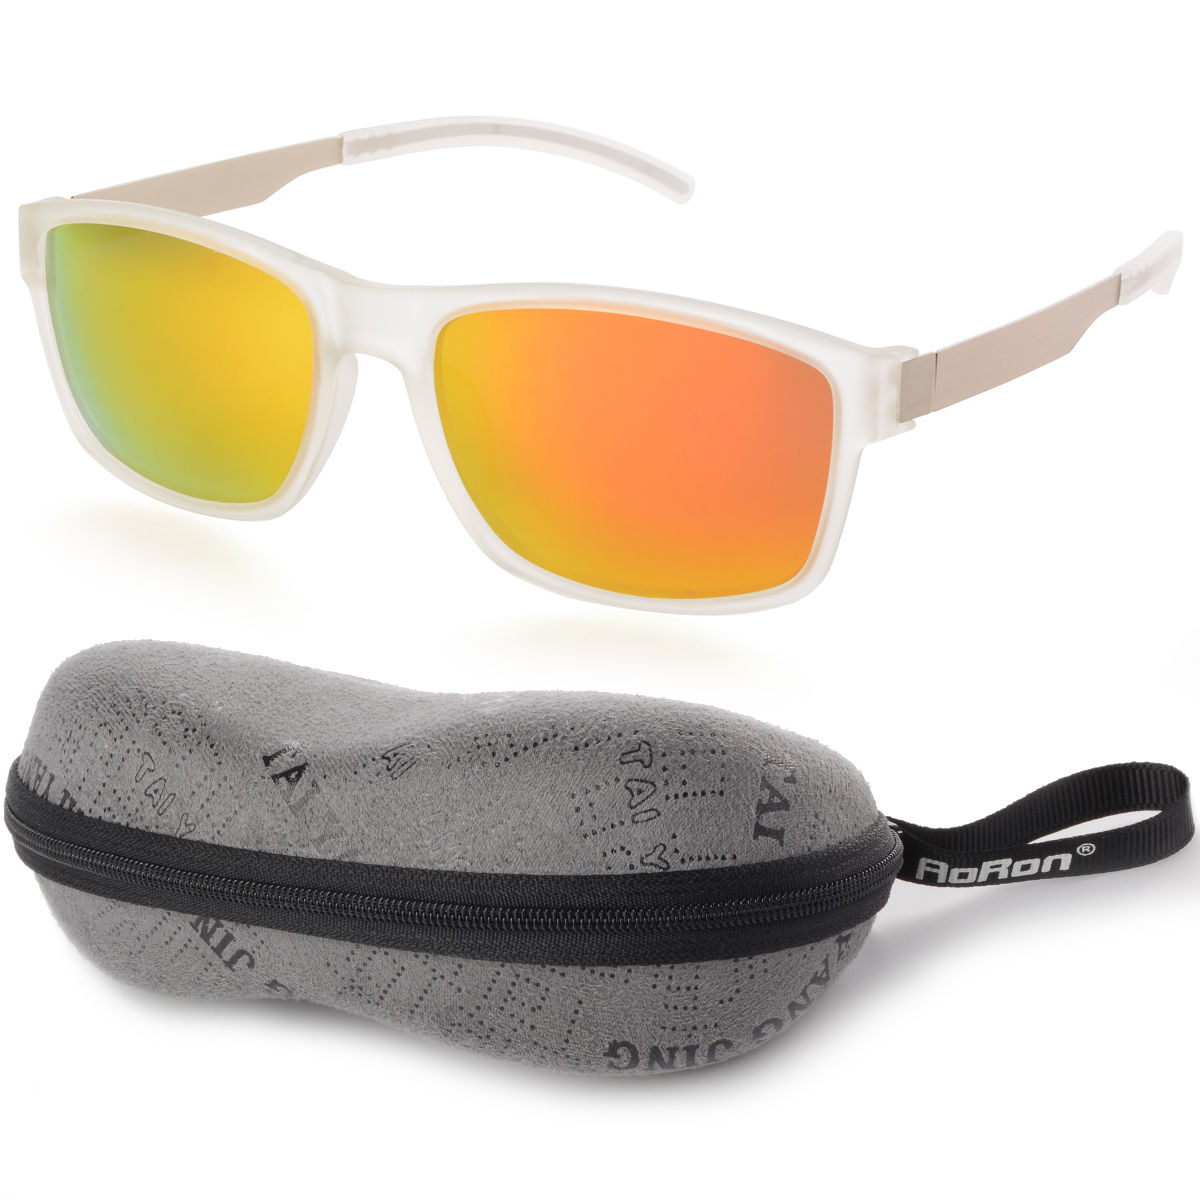 18ca90e758 Fisherman Eyewear Sunglasses